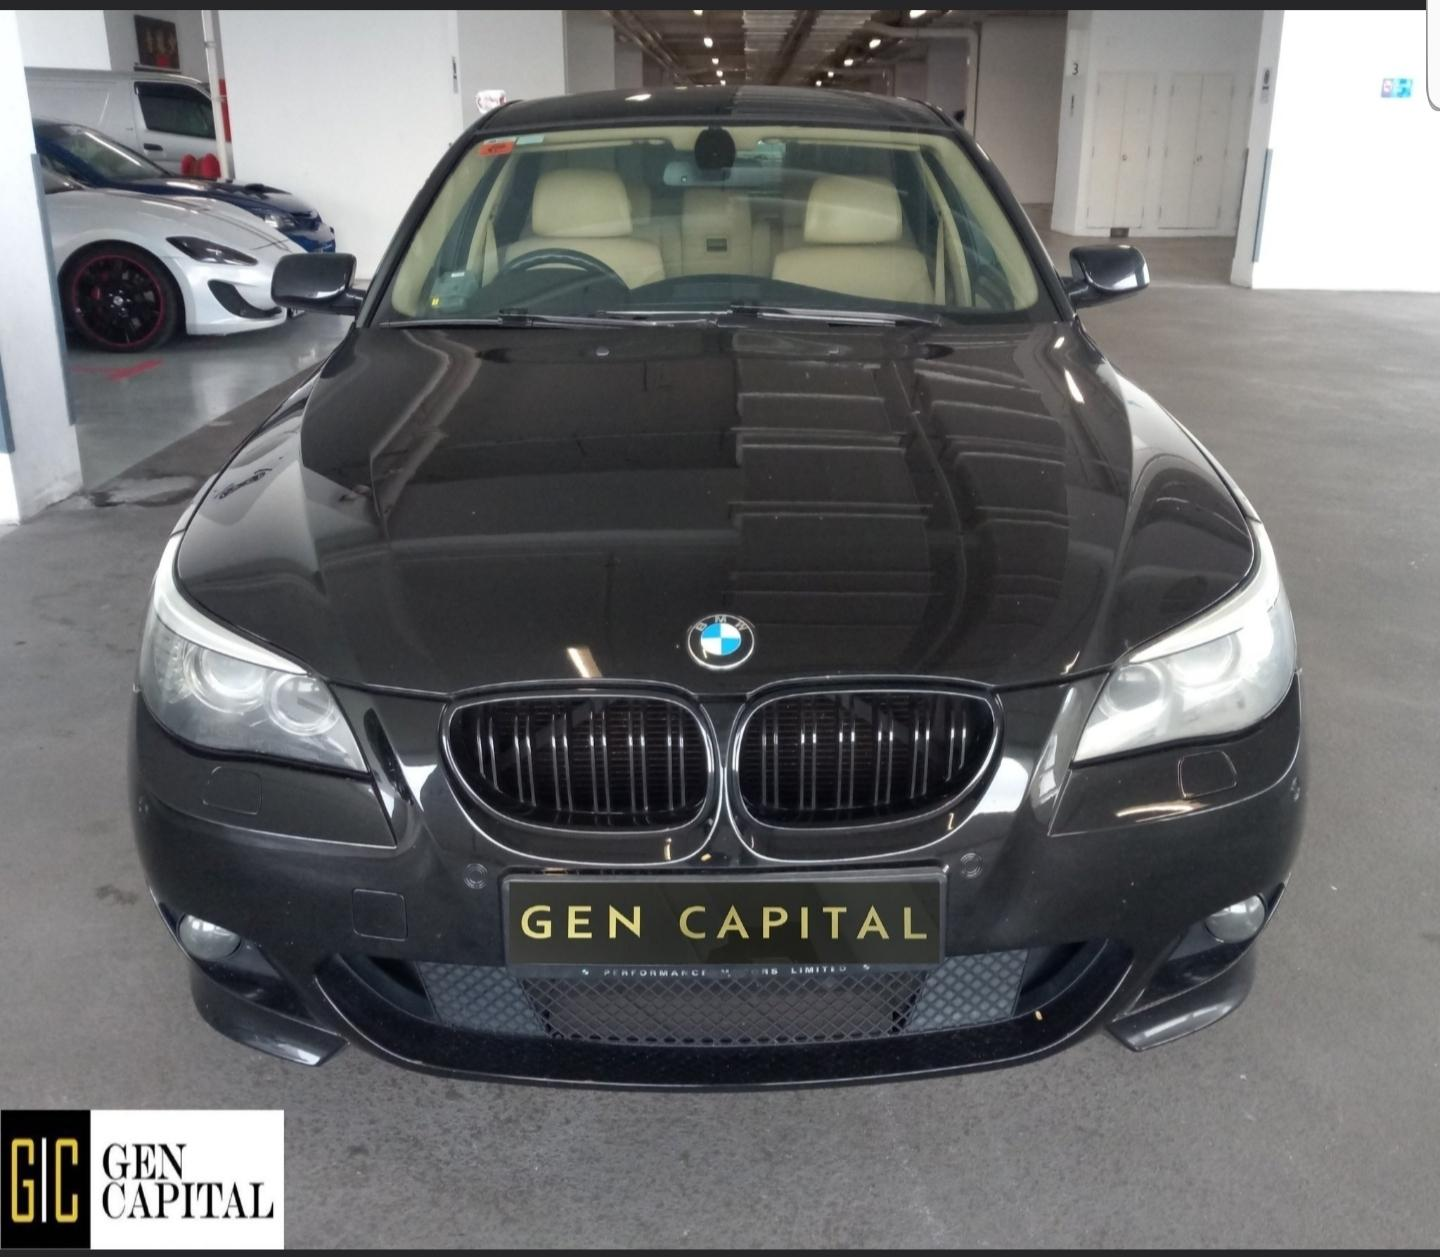 BMW 525i XL Luxury 2010 - Best rates, full servicing provided!